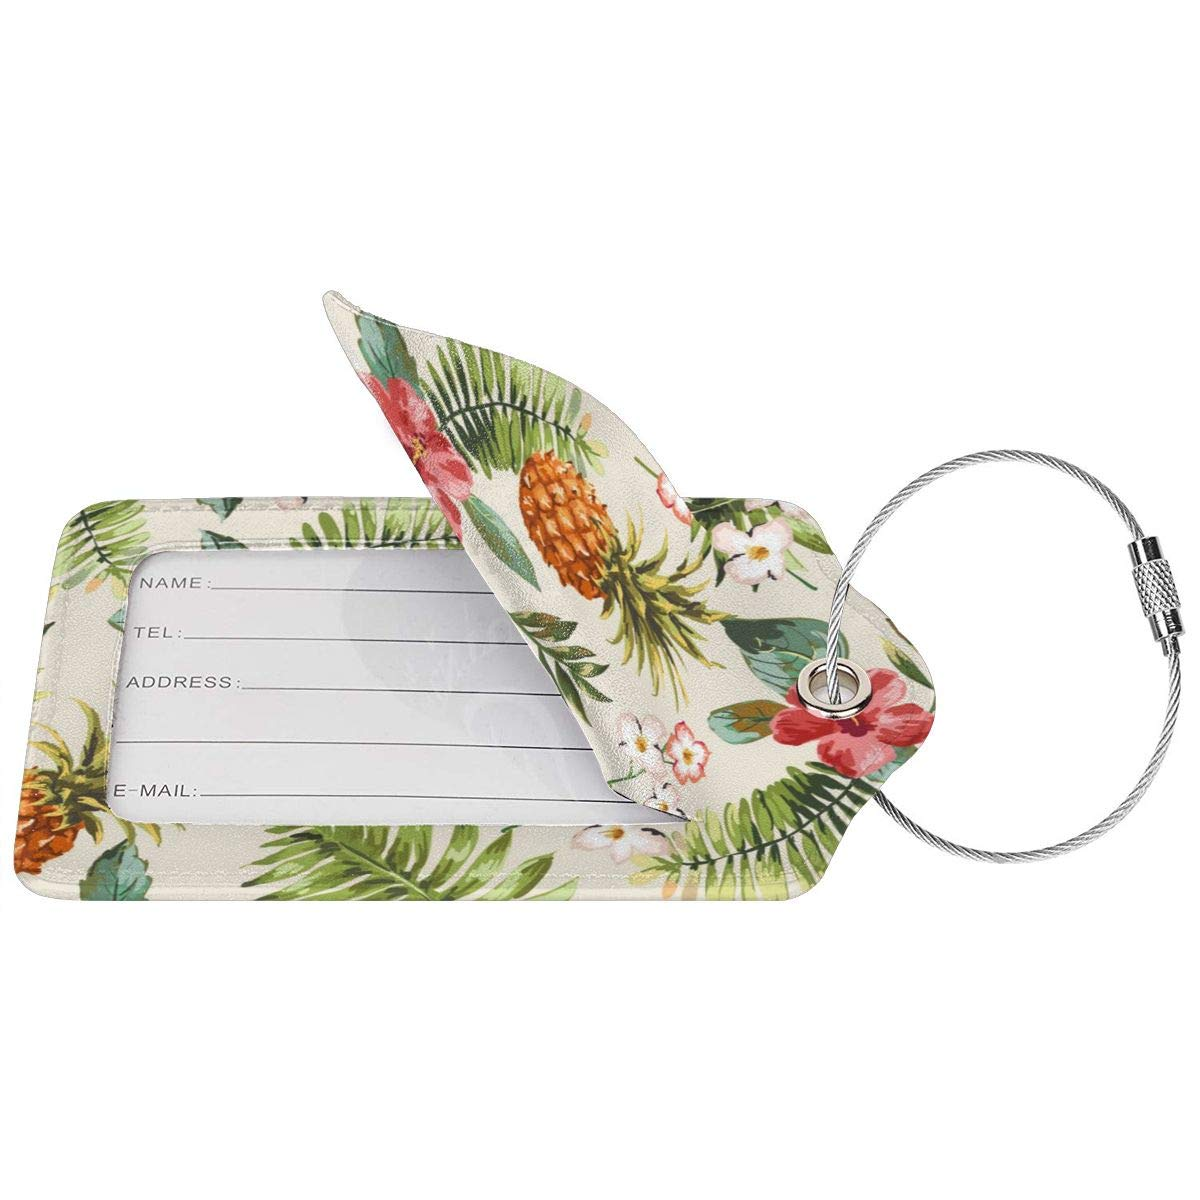 Seamless Tropical Flowers With Pineapple Travel Luggage Tags With Full Privacy Cover Leather Case And Stainless Steel Loop